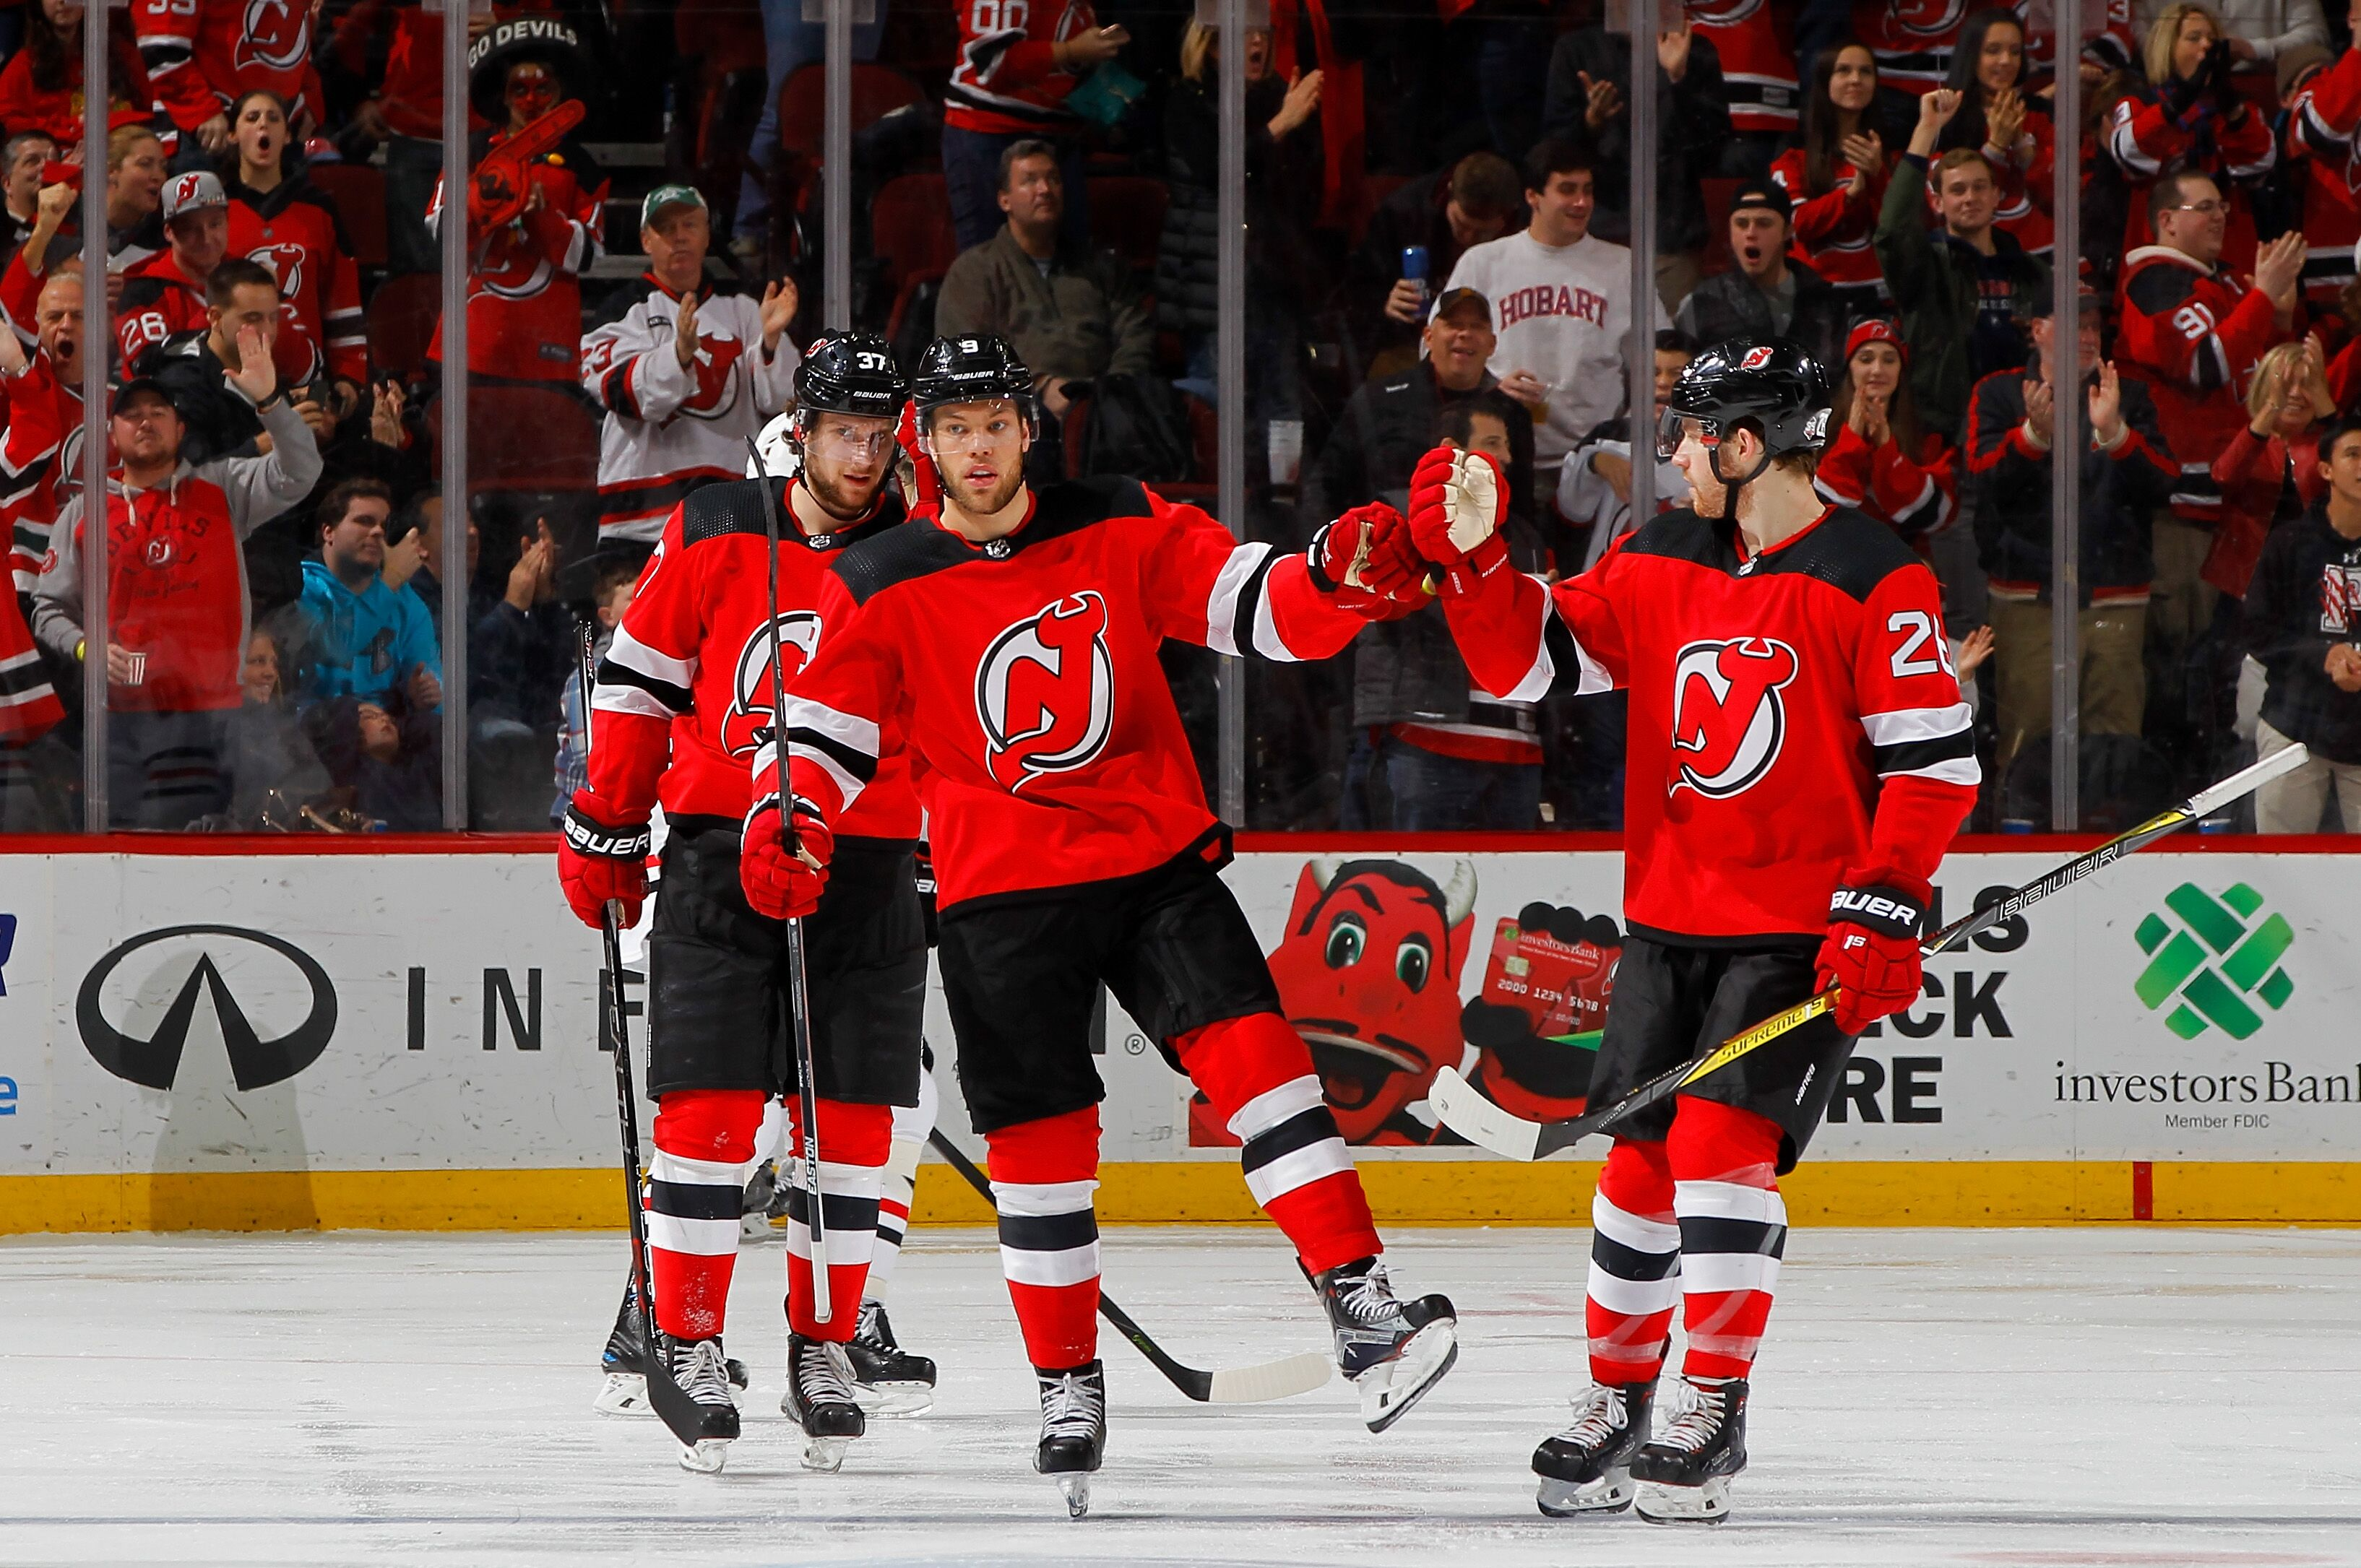 New Jersey Devils  Tanking Should Be Furthest Thing From Fans Minds fce6a34558e